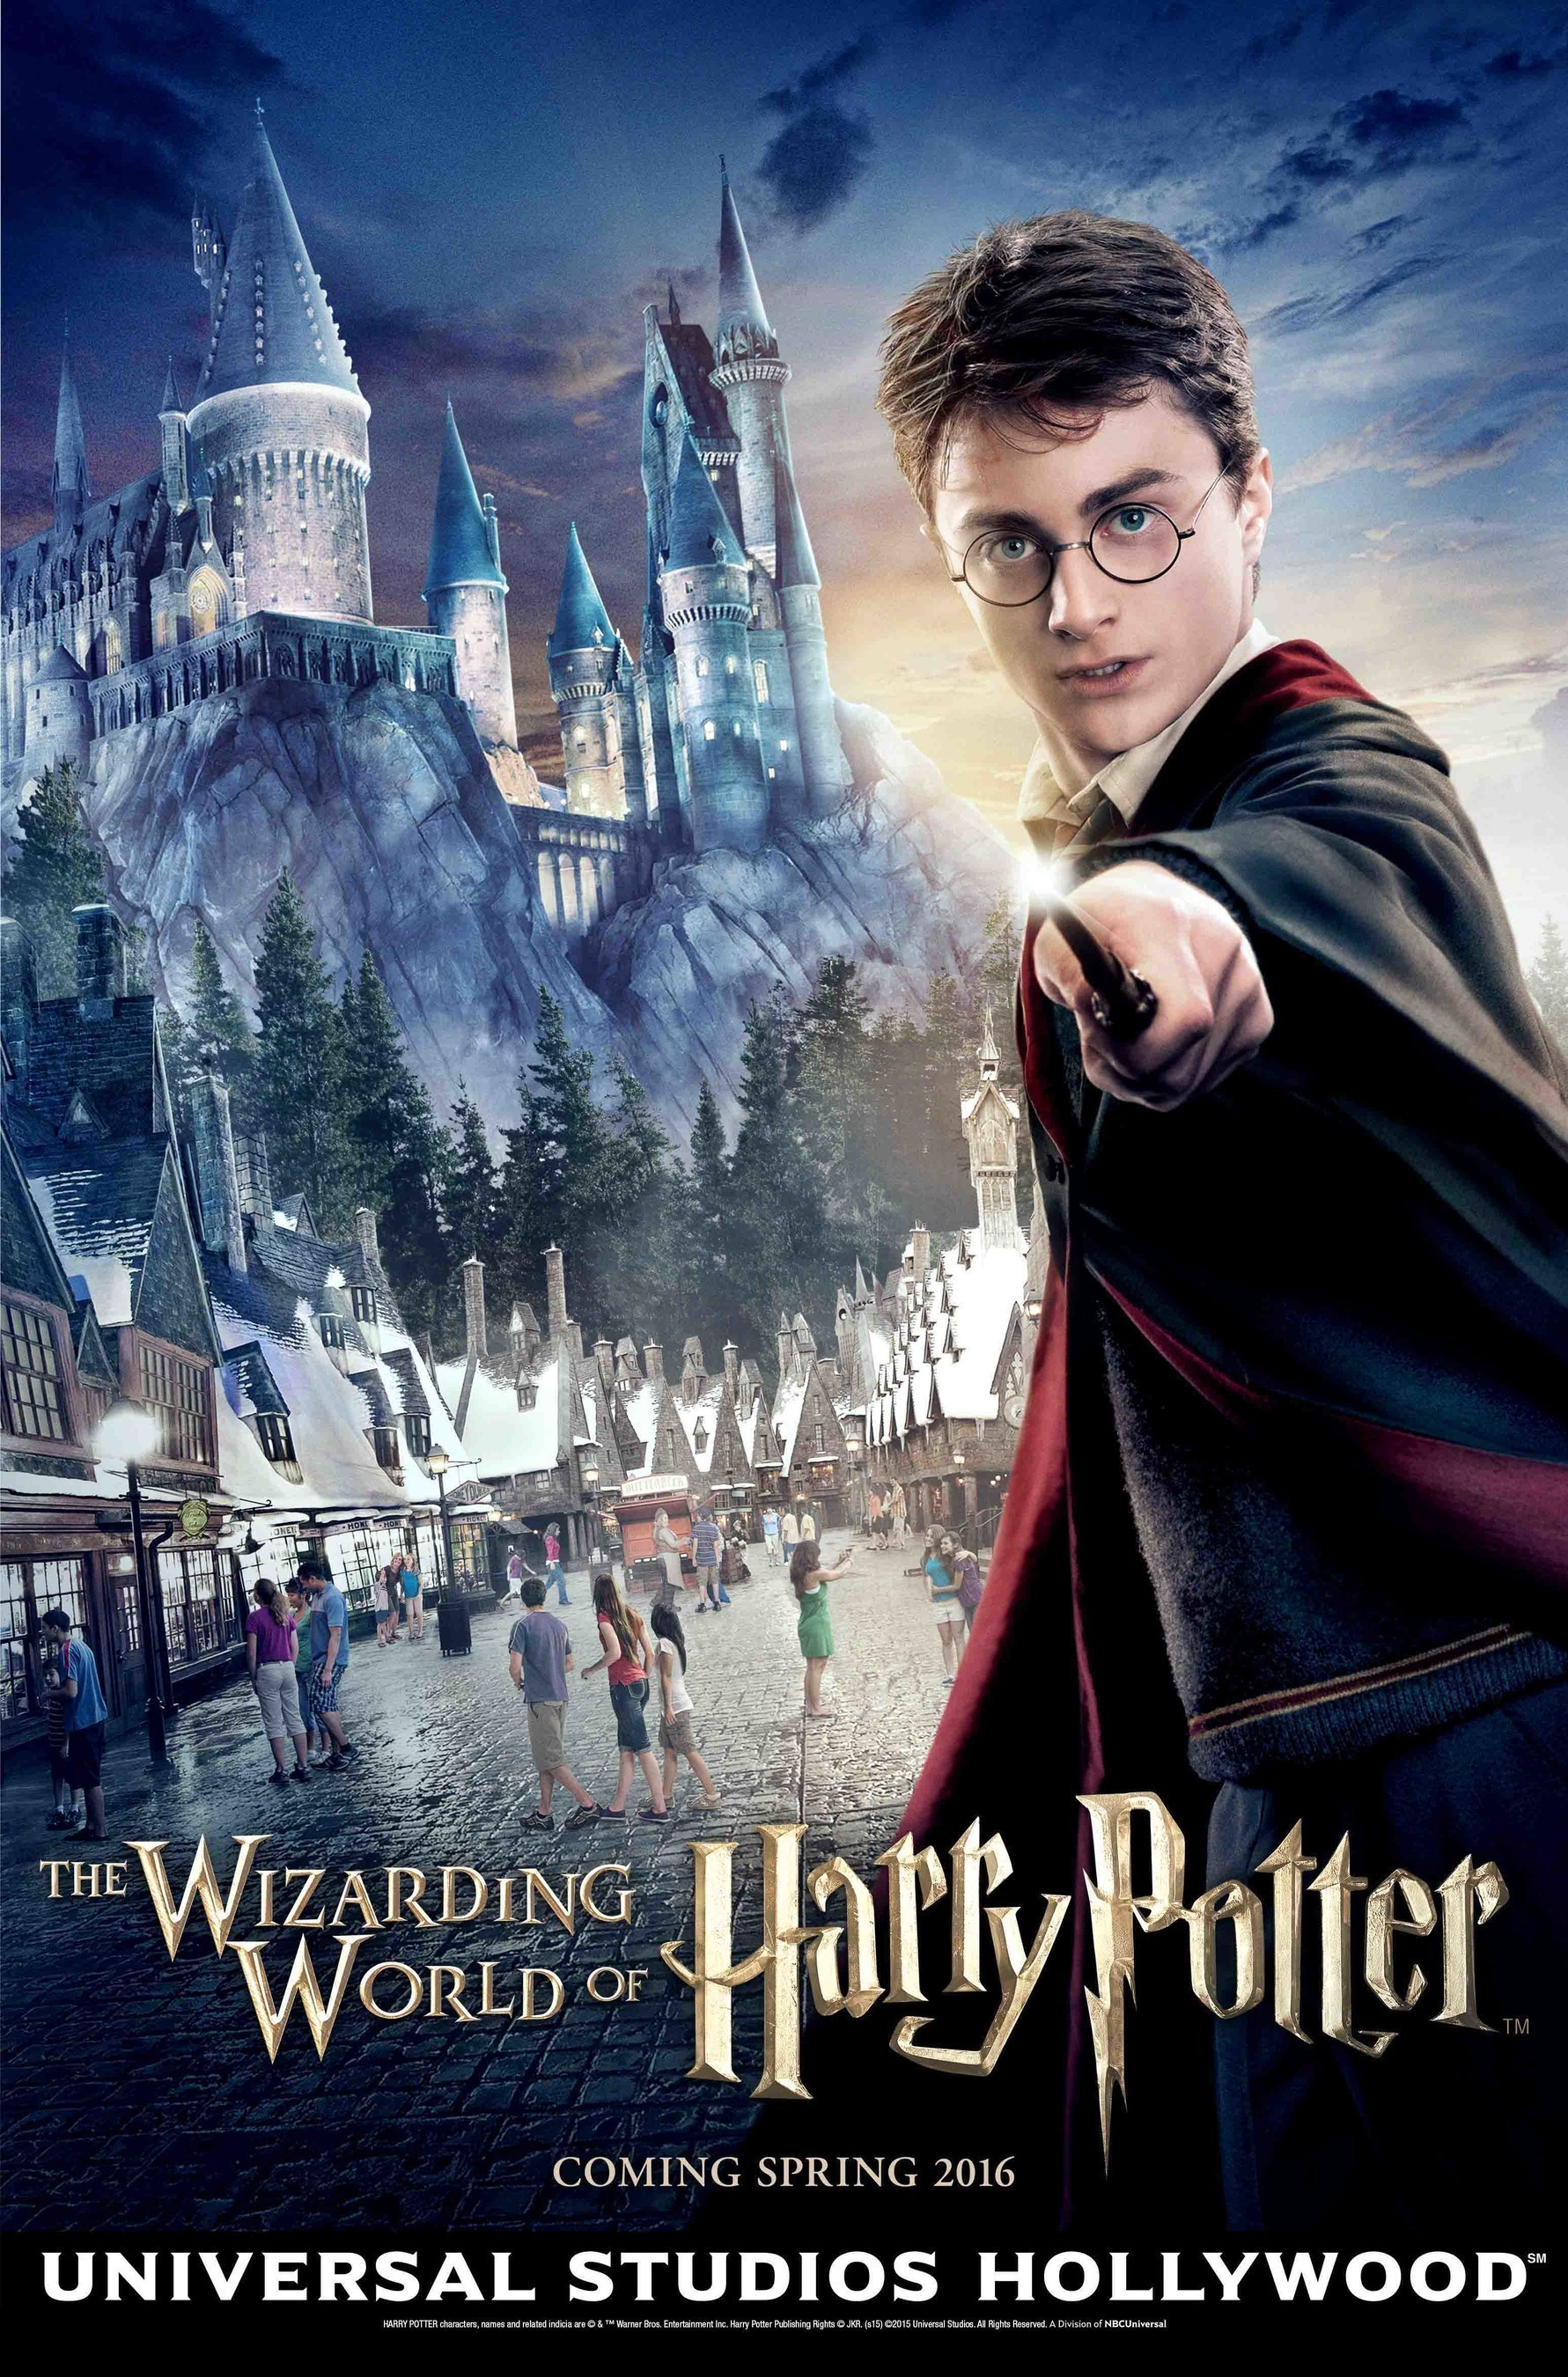 Universal Studios Hollywood Invites Global Visitors to Preview Newly Launched Interactive Website and Experience a Virtual Tour of 'The Wizarding World of Harry Potter'